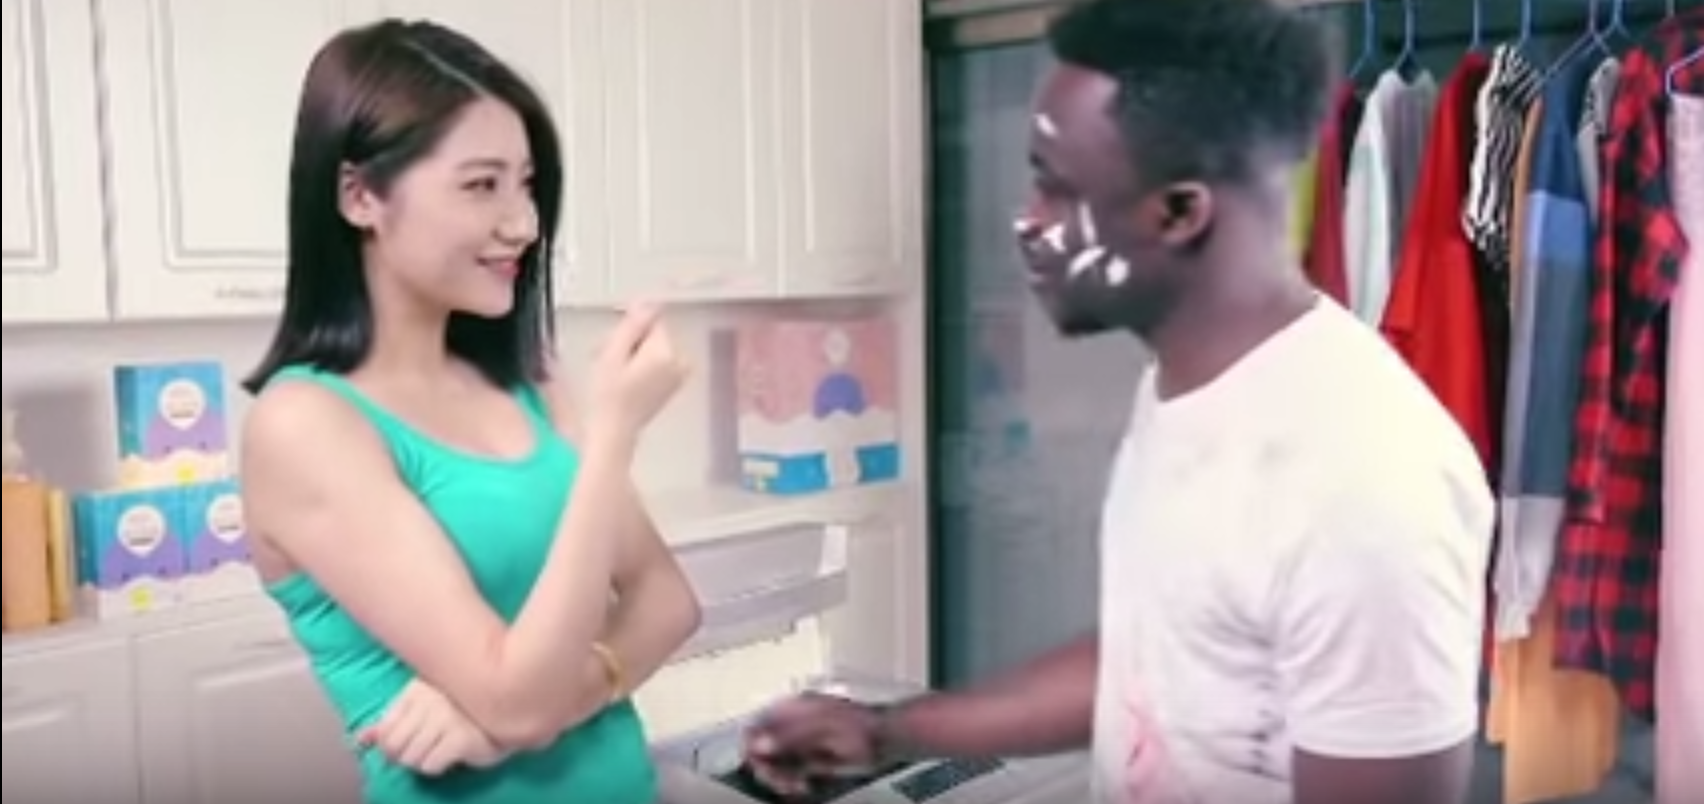 5-29-16 Chinese laundry detergent ad